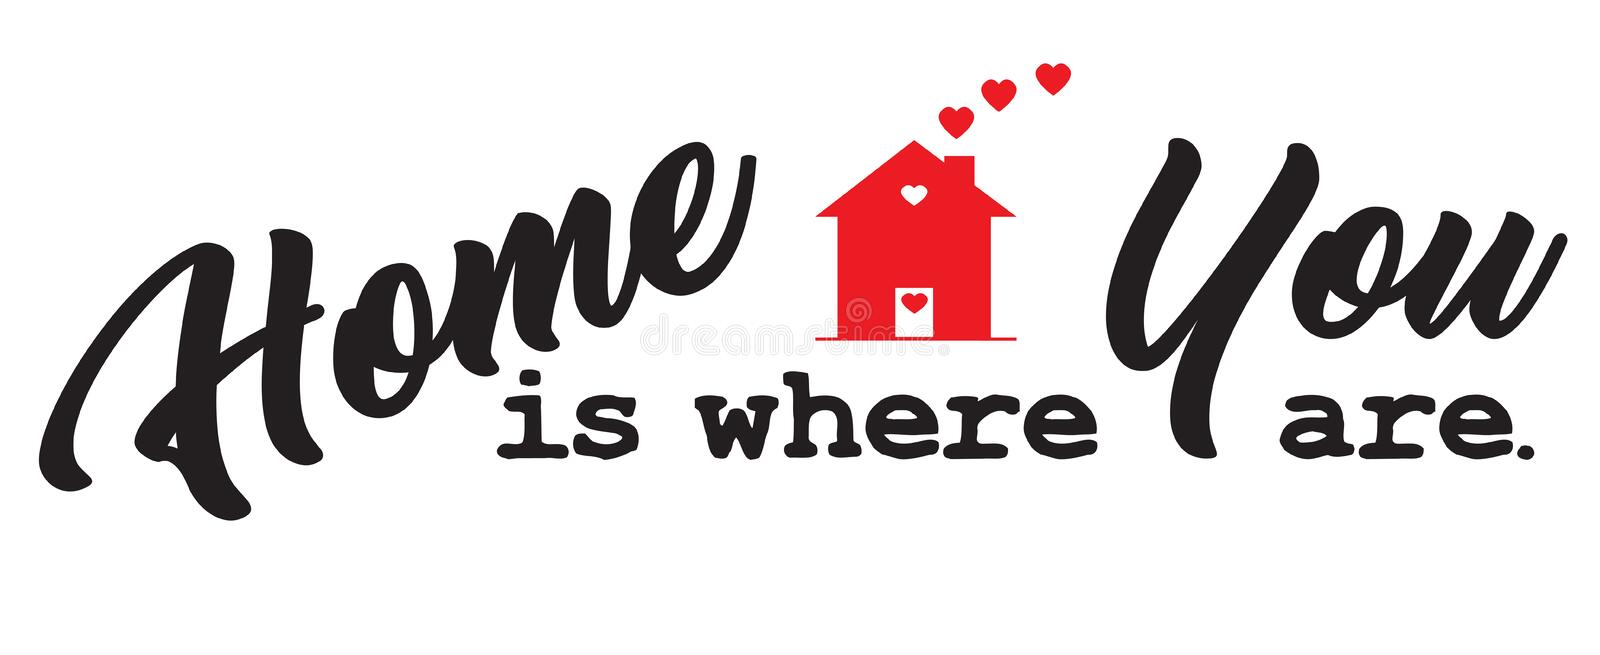 Home Is Where You Are royalty free illustration